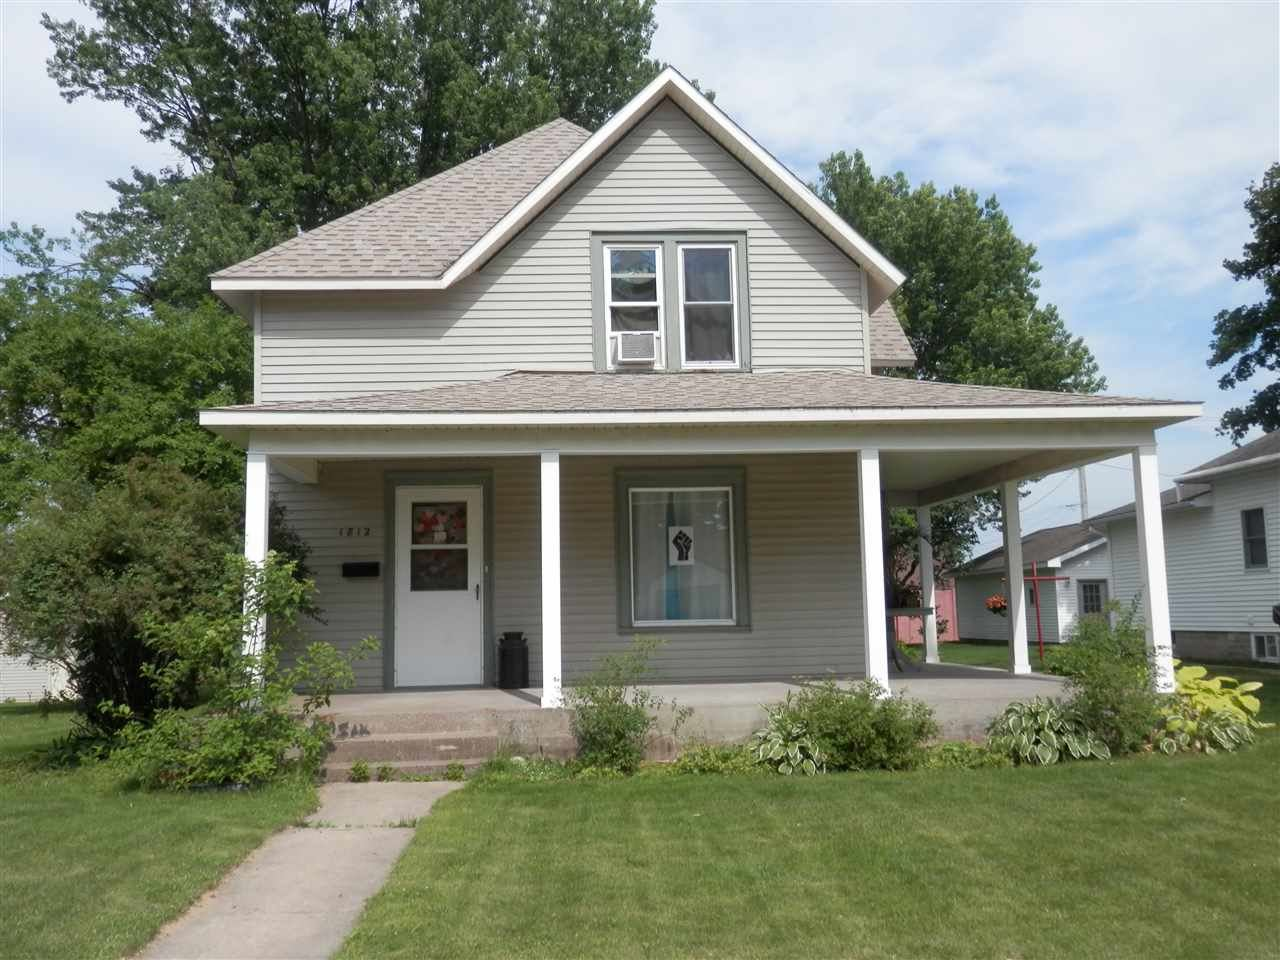 1812 Superior Ave, Tomah, WI 54660 - #: 1887304